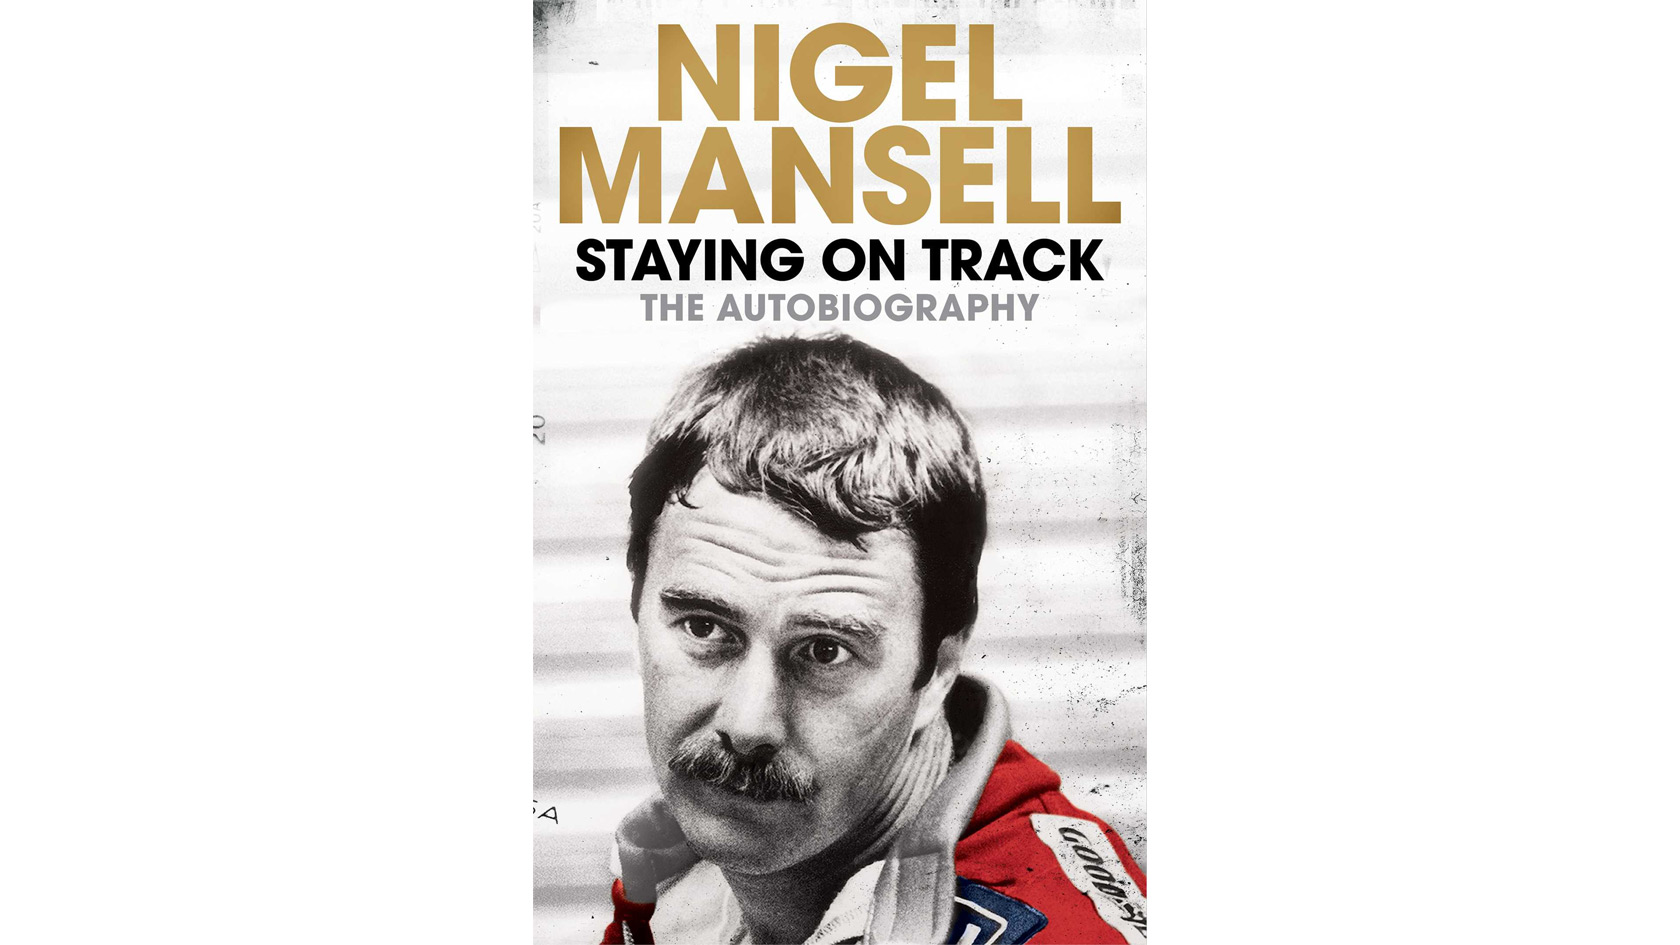 Nigel Mansell: Staying on Track - The Autobiography